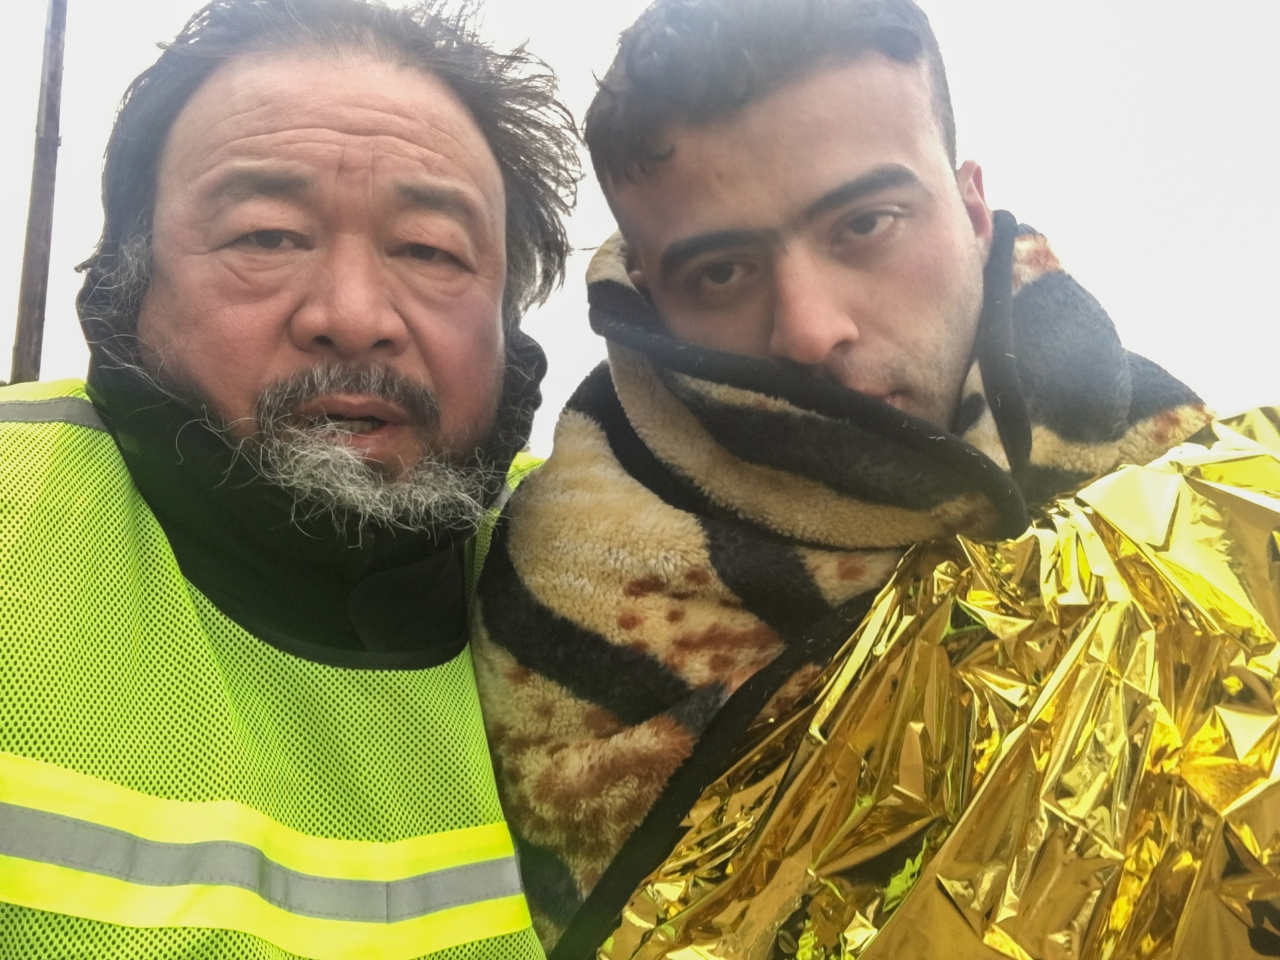 selfie-with-just-landed-refugee-on-the-beach-of-lesbos-greece-26-jan-2016-c-ai-weiwei-studio